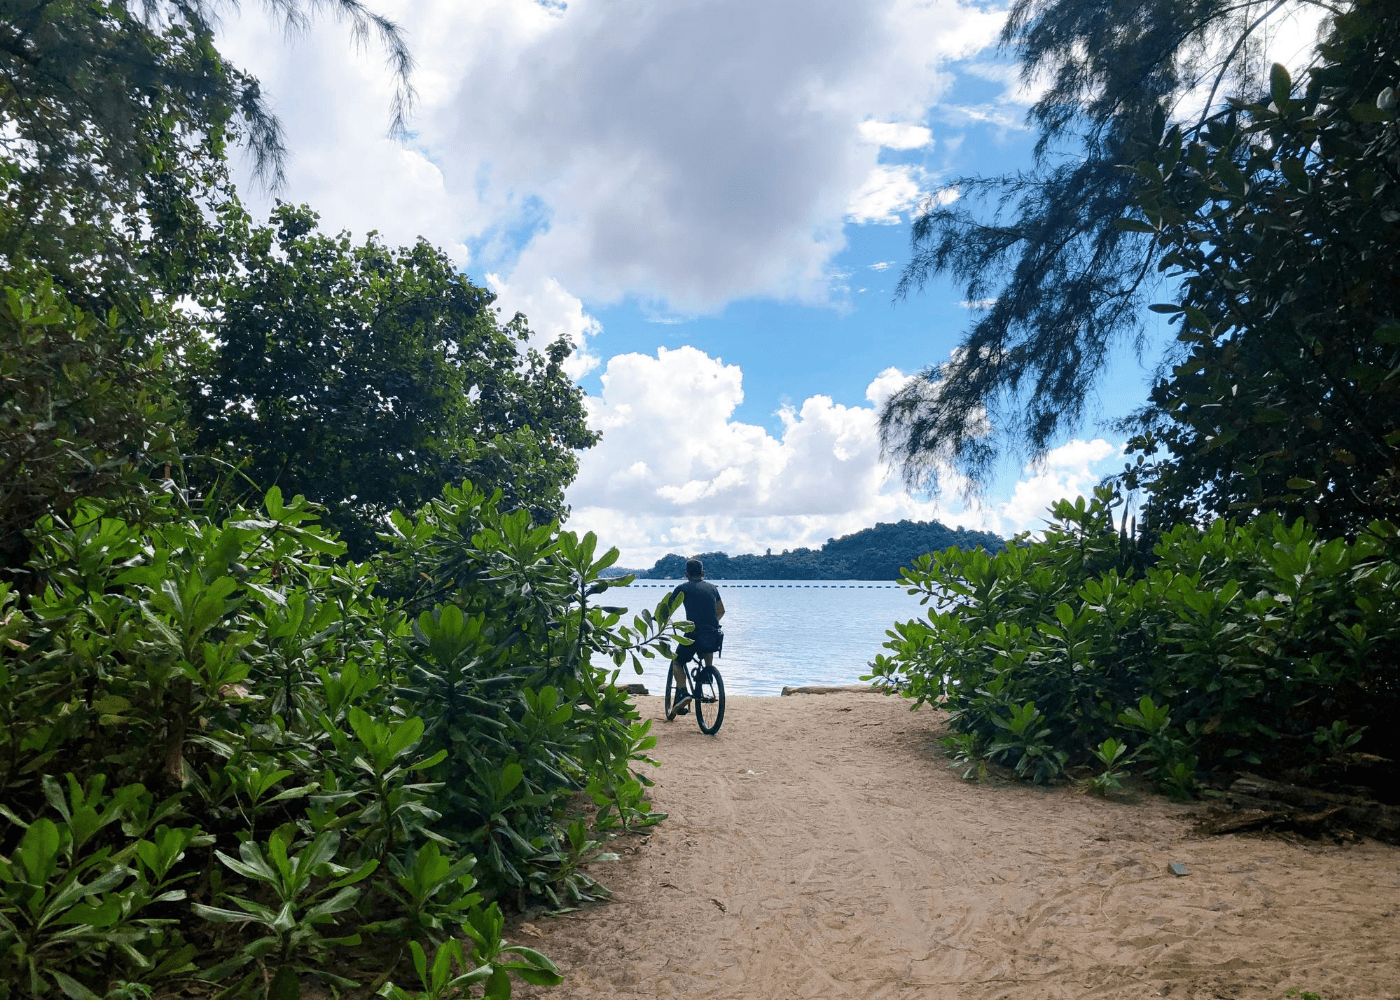 cycling at the beach